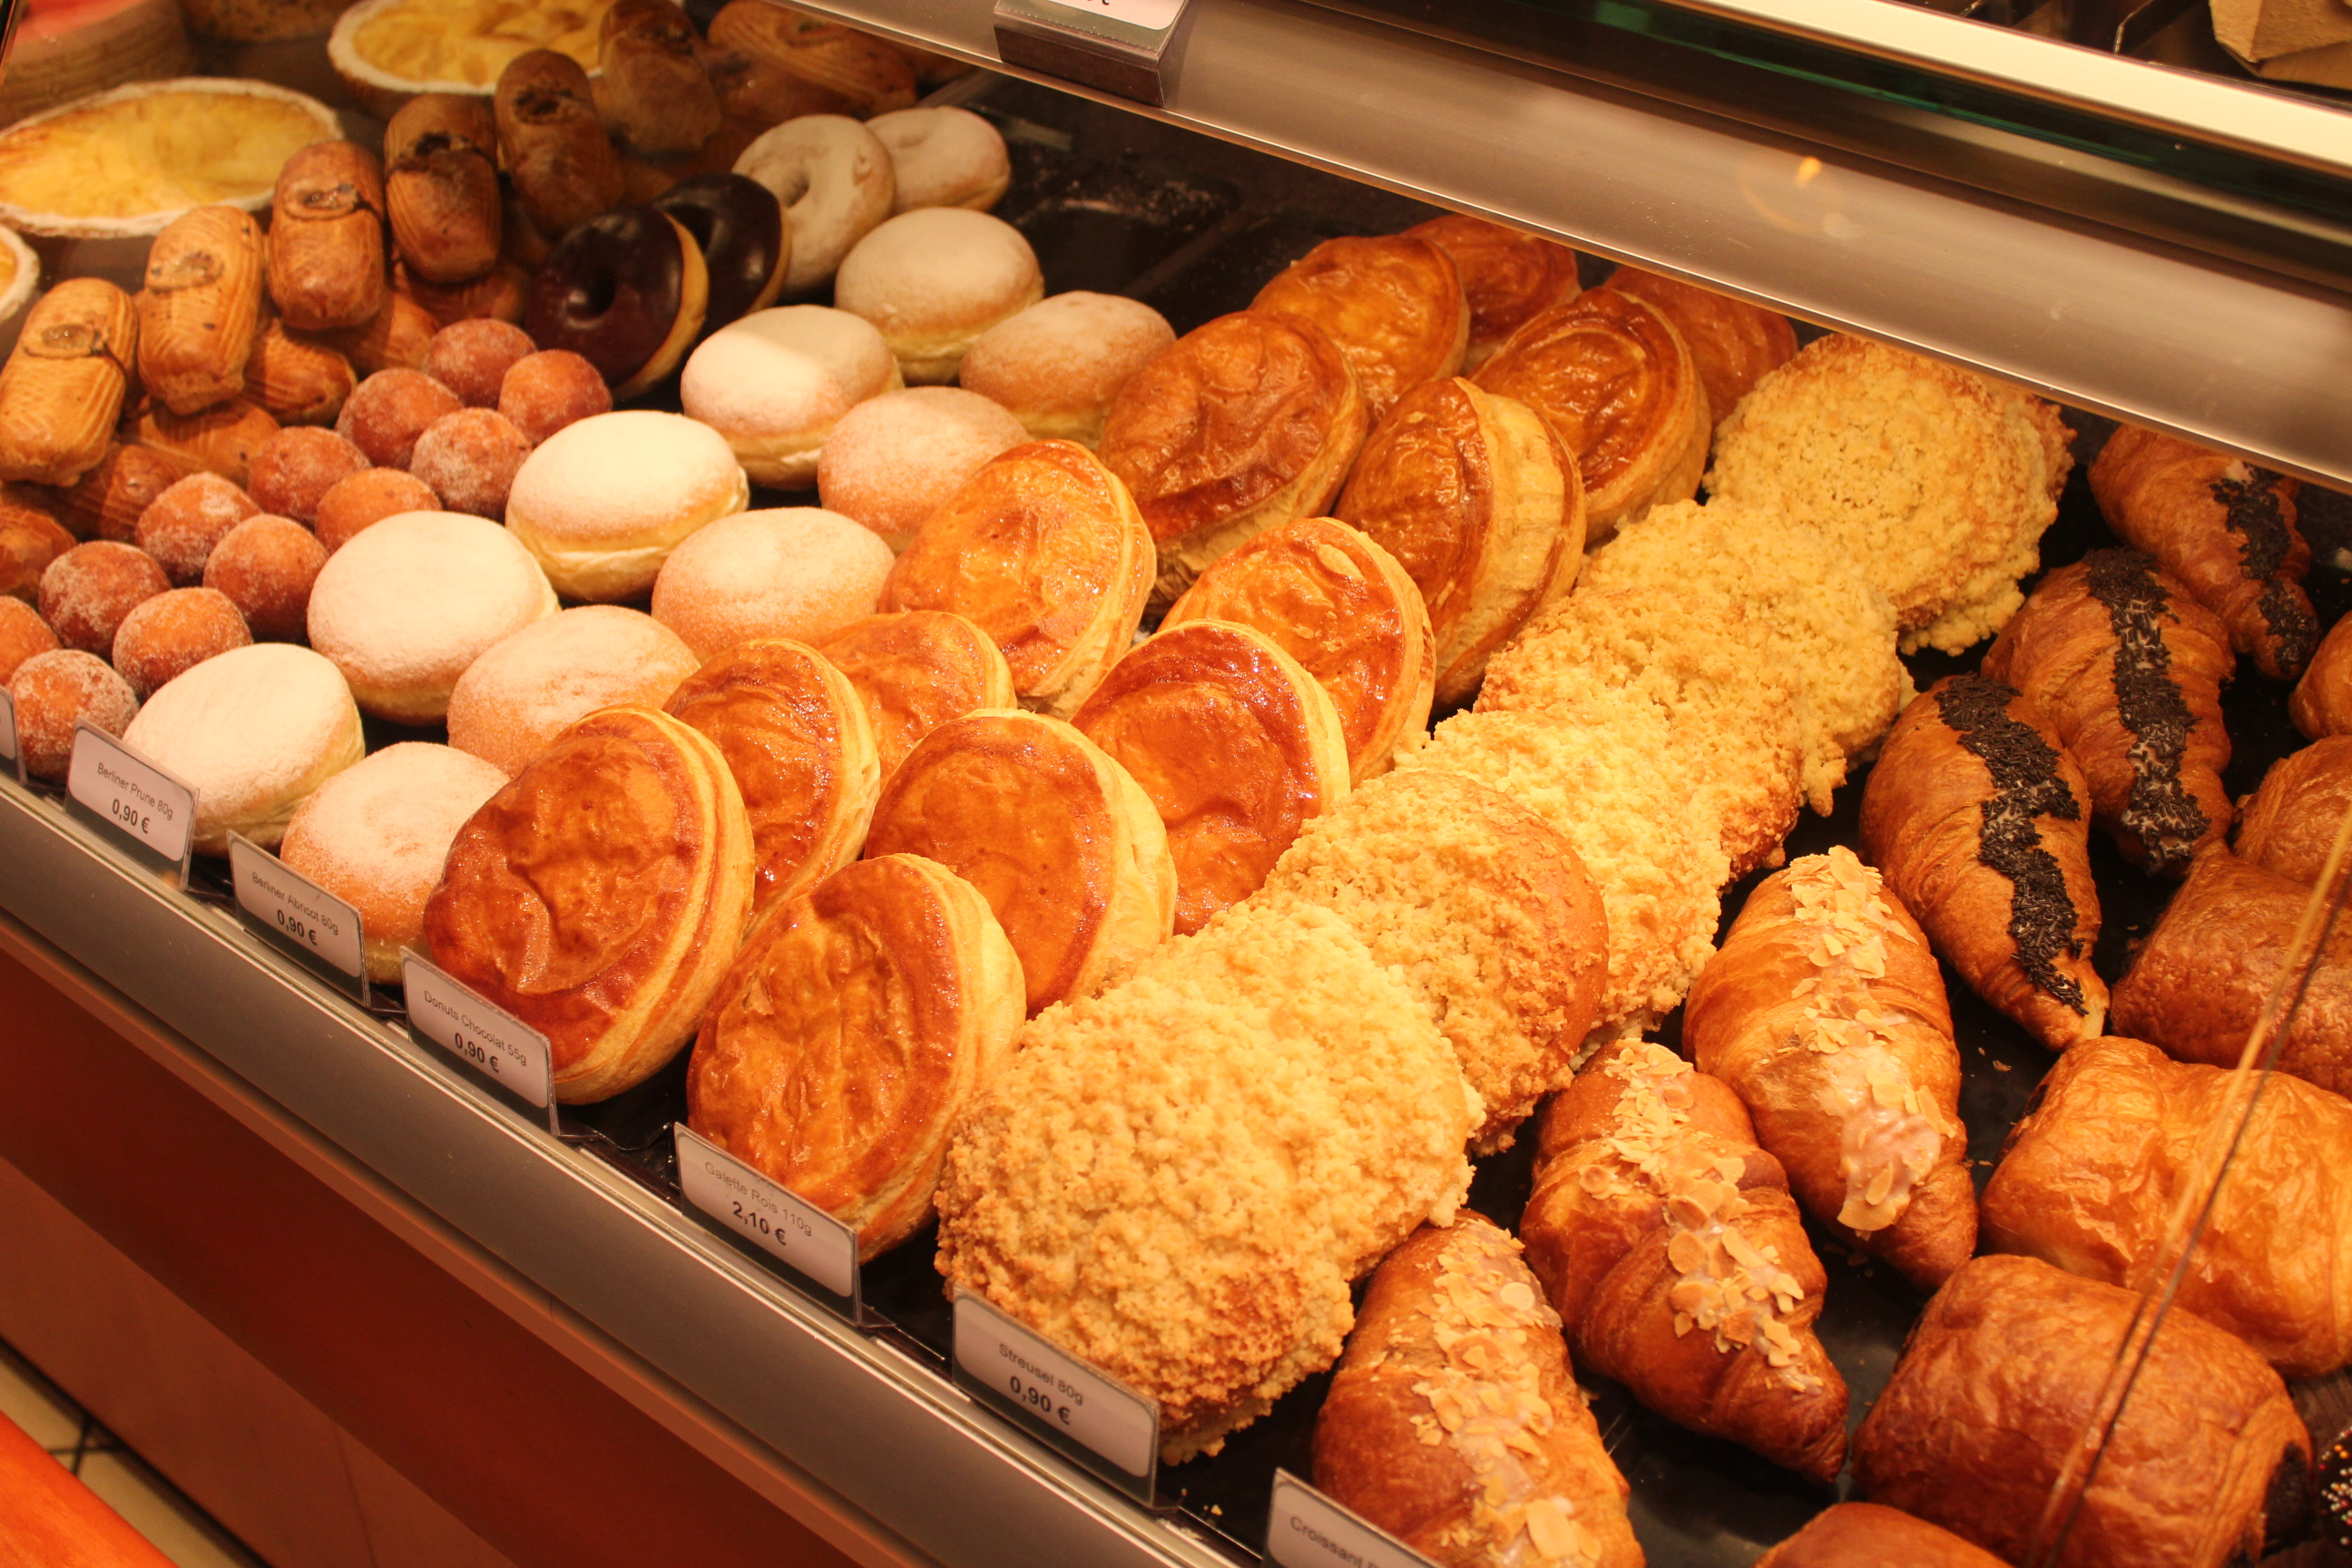 Pastries; Luxembourg City, Luxembourg; 2012